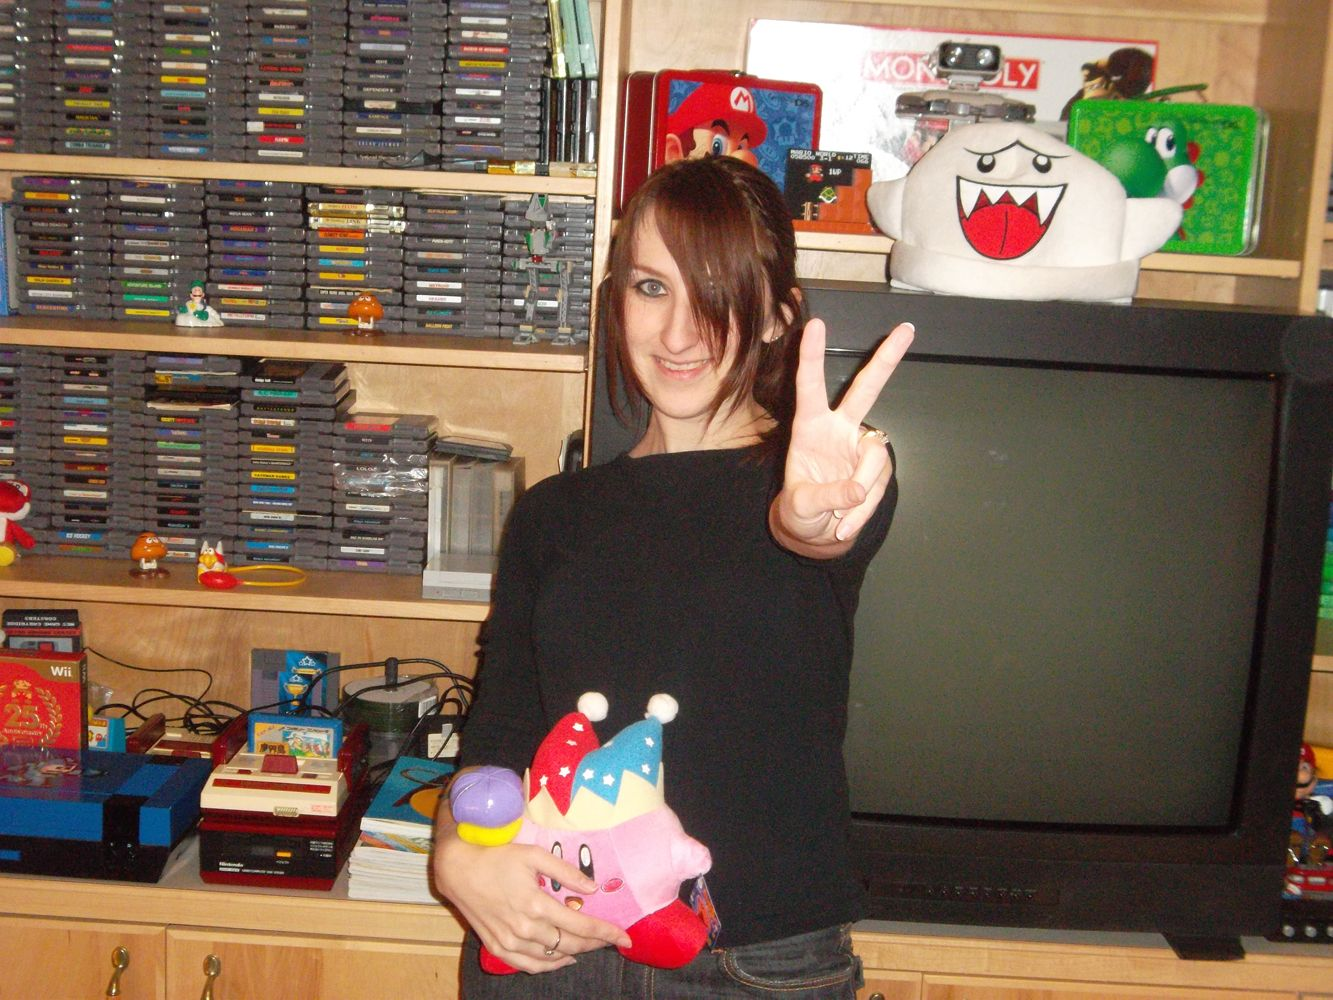 Retro gamer girl awesome collection of retro games here